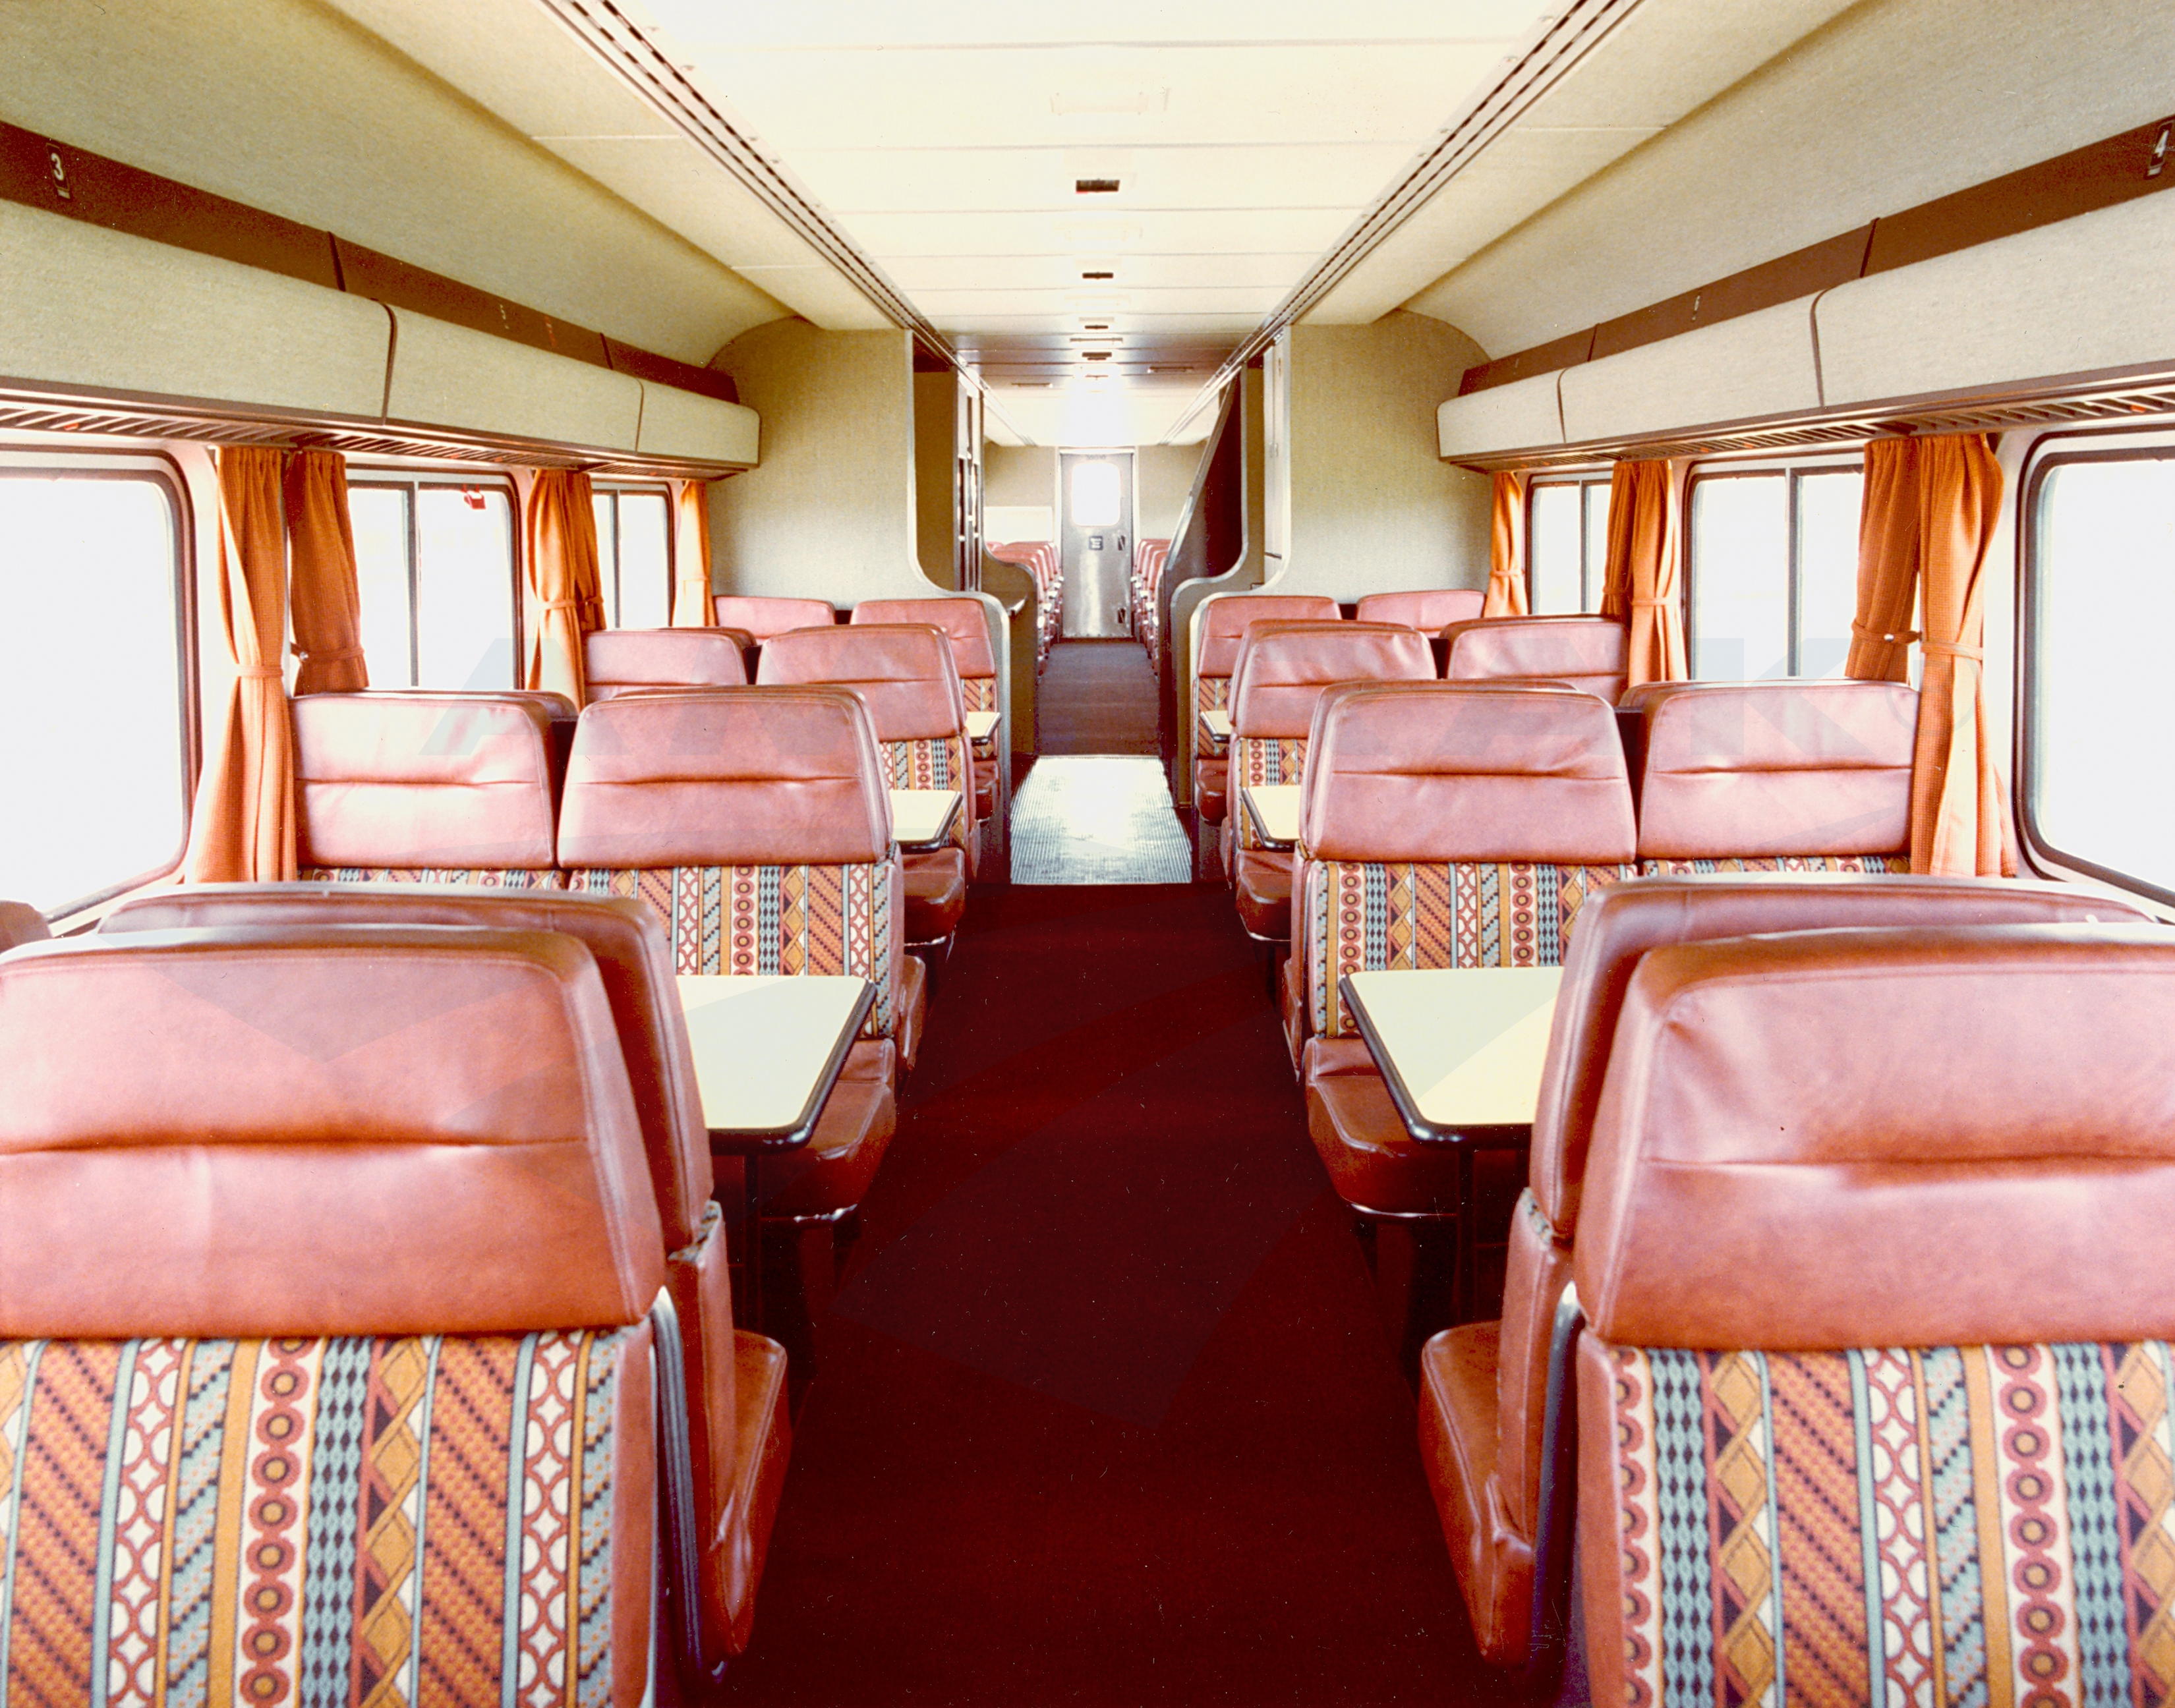 interior of a superliner i dining car 1980s amtrak history of america s railroad. Black Bedroom Furniture Sets. Home Design Ideas